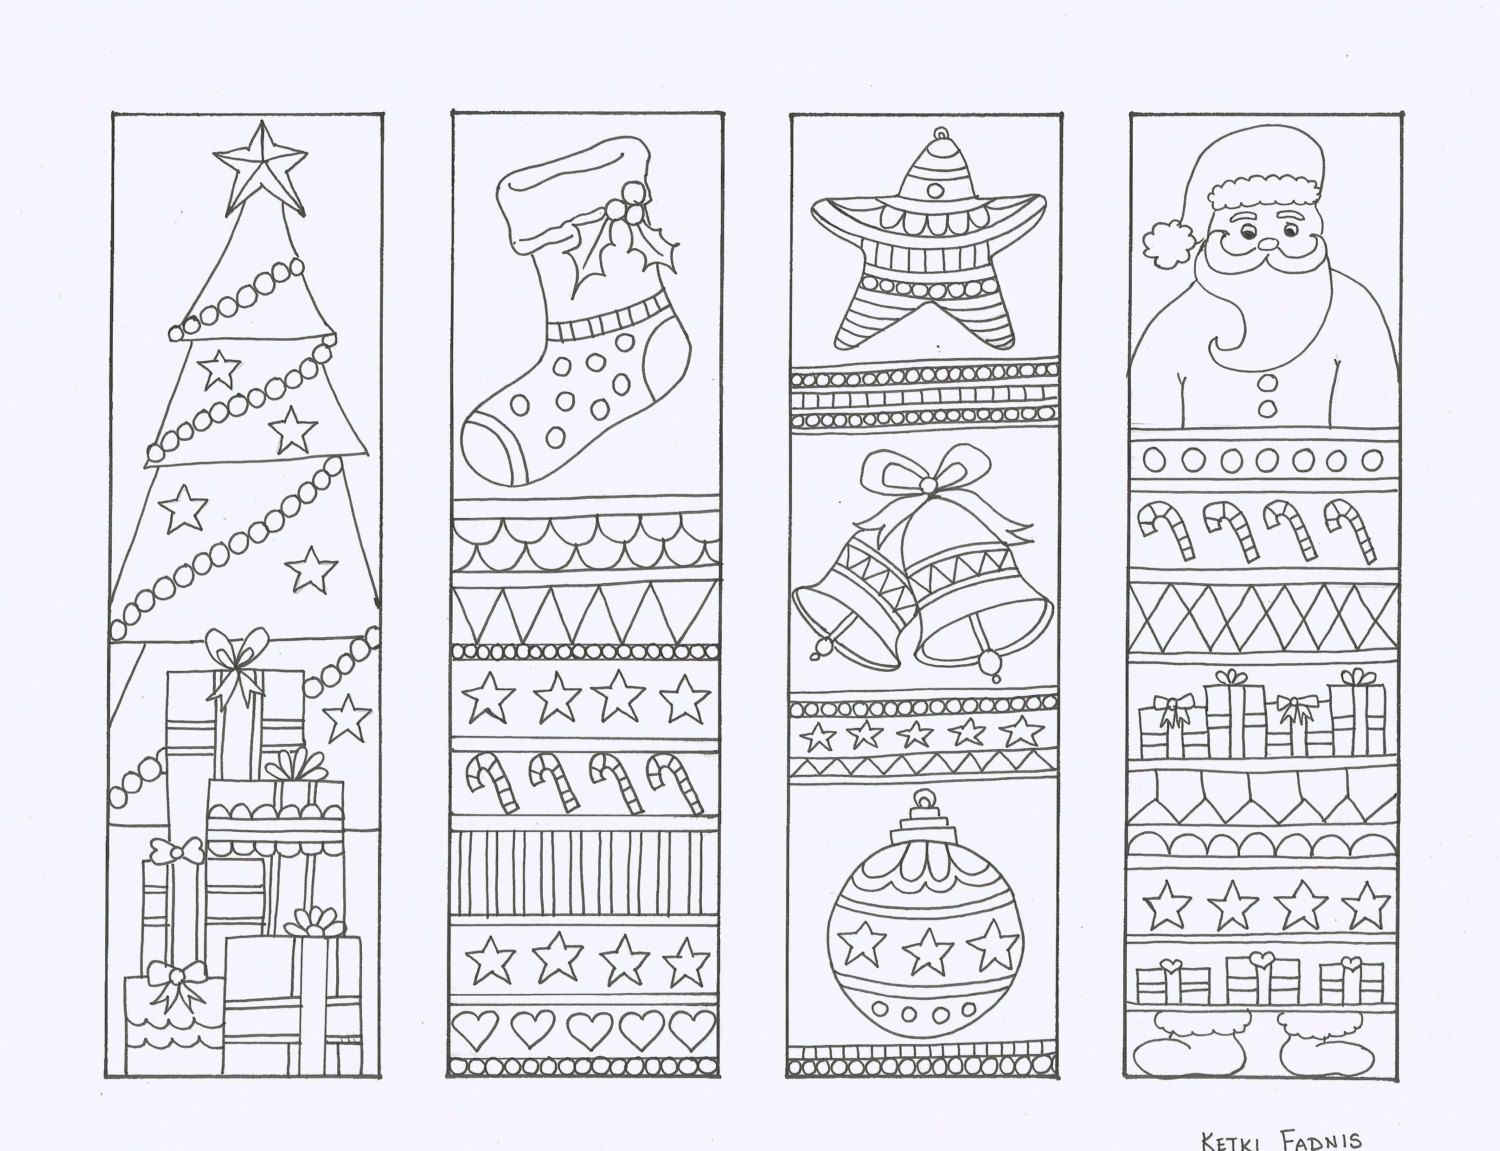 Here S A Set Of Four Christmas Bookmarks Hand Drawn By Me For You To Color Coloring Is Greatly R Coloring Bookmarks Christmas Colors Christmas Bookmarks